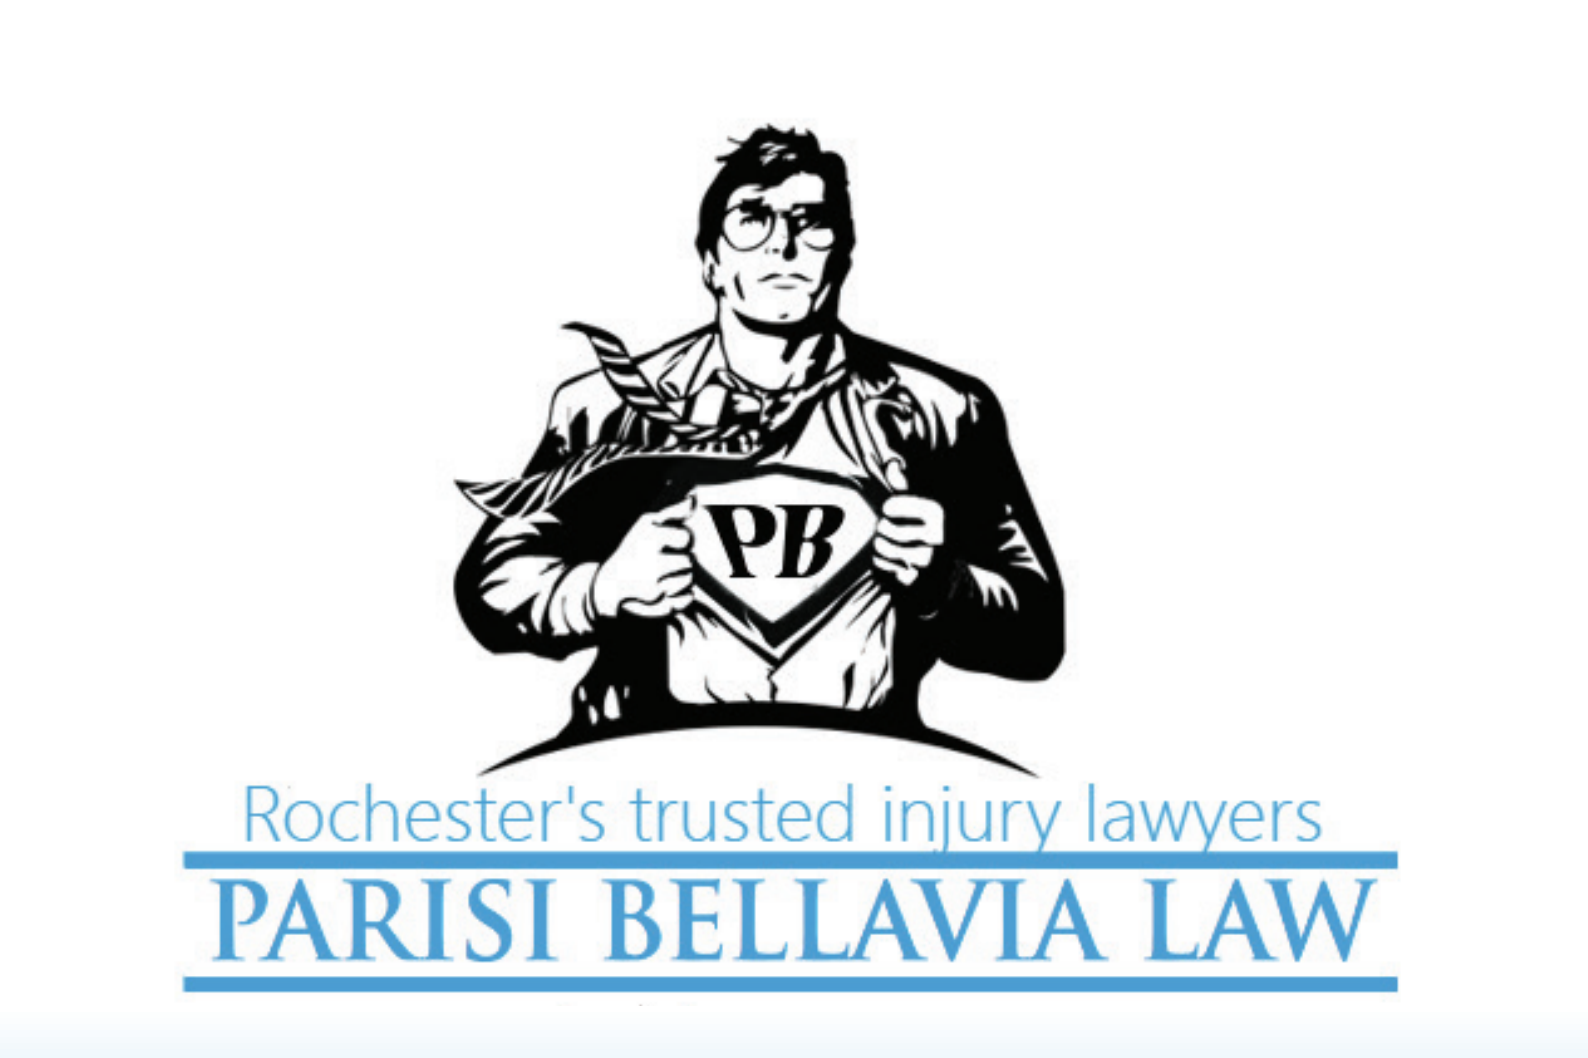 Detroit '67 is sponsored by Parisi Bellavia Law -